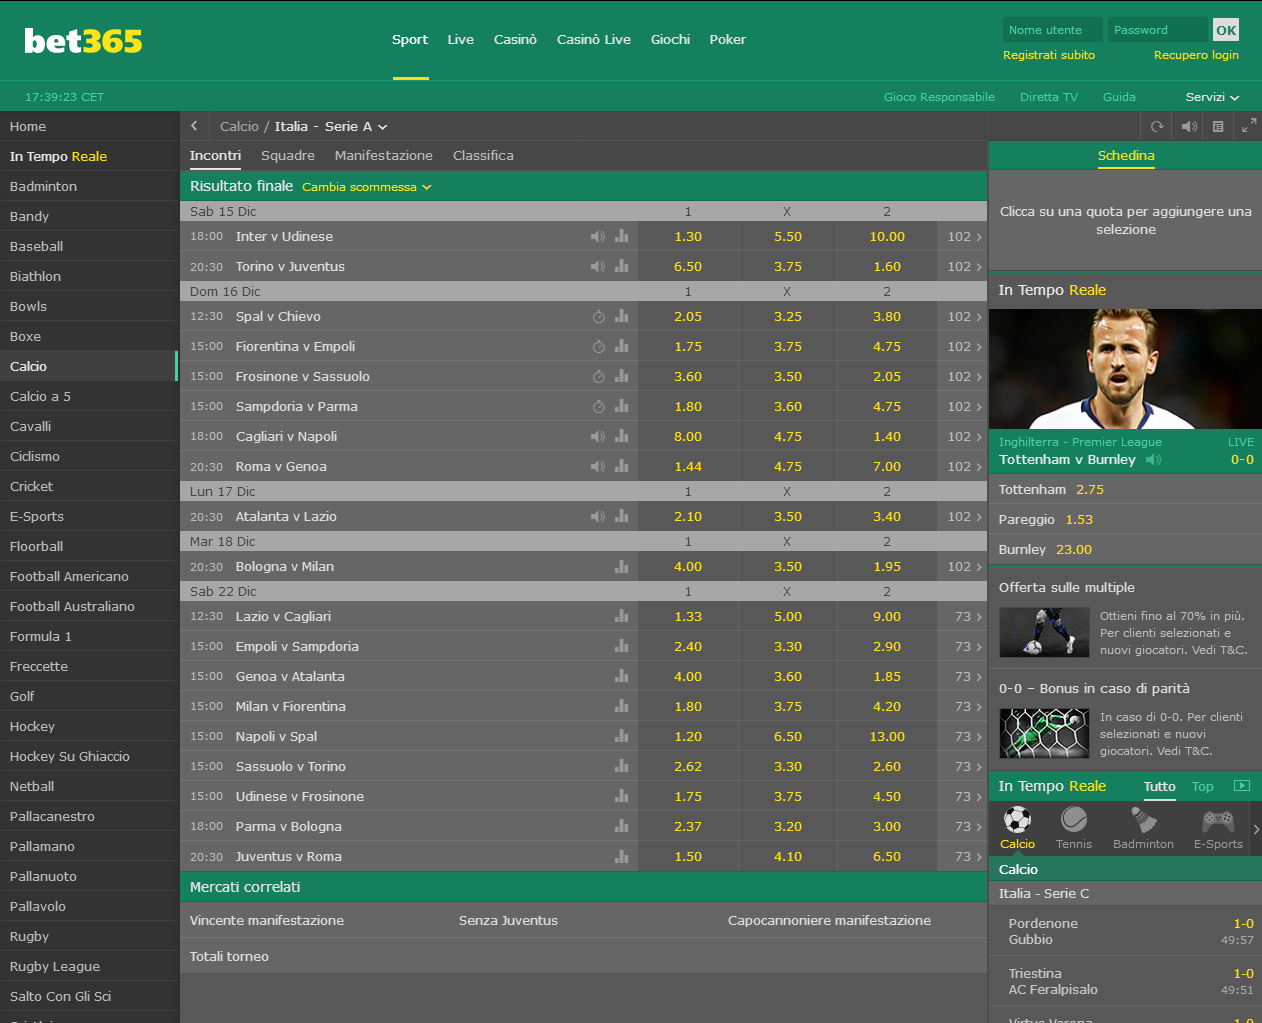 Infobetting bet365 list of online football betting in nigeria the richest